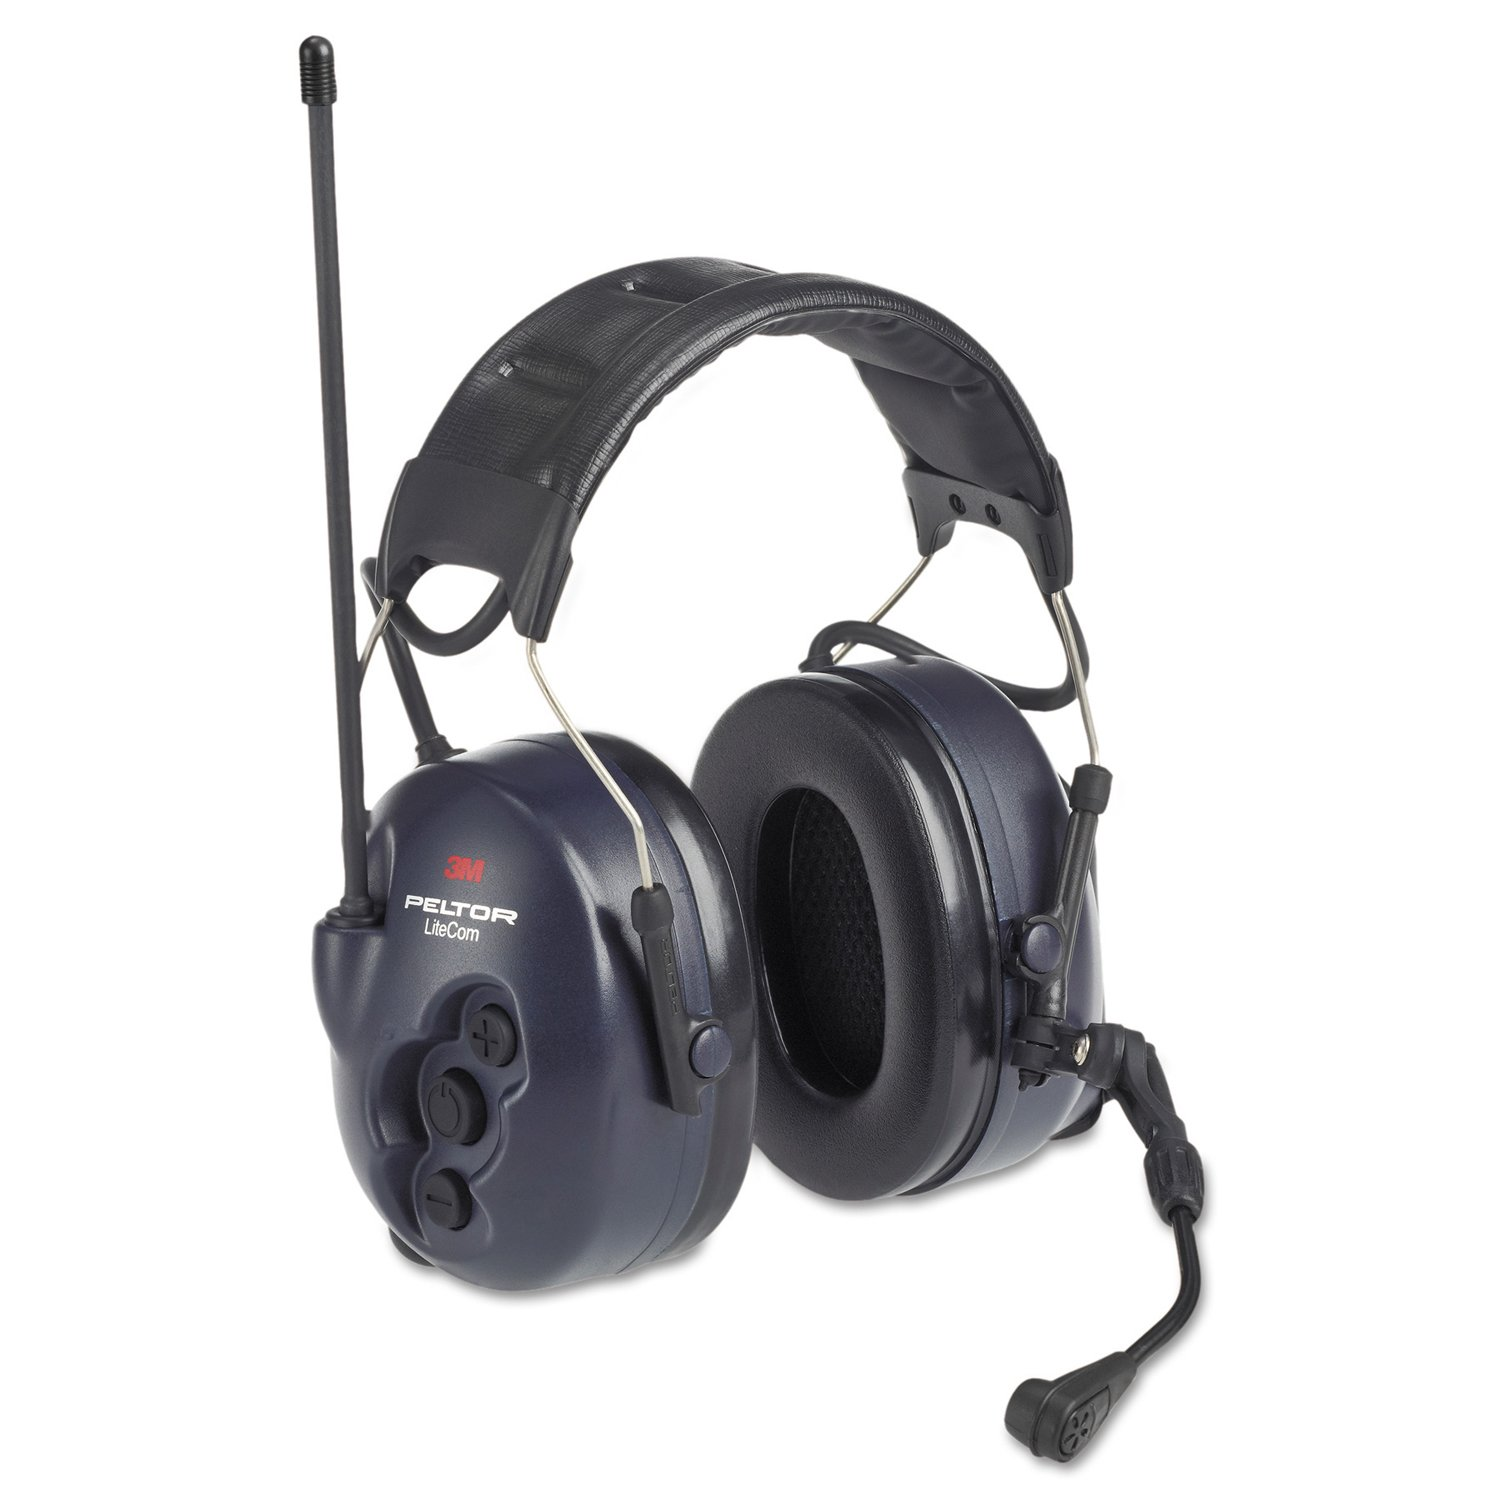 Image of 3M Personal Safety Division MT53H7A4600-NA Peltor LiteCom BRS Headsets, 26 DB NRR, Black, Over The Head, 464 - 467 MHz Safety Ear Muffs